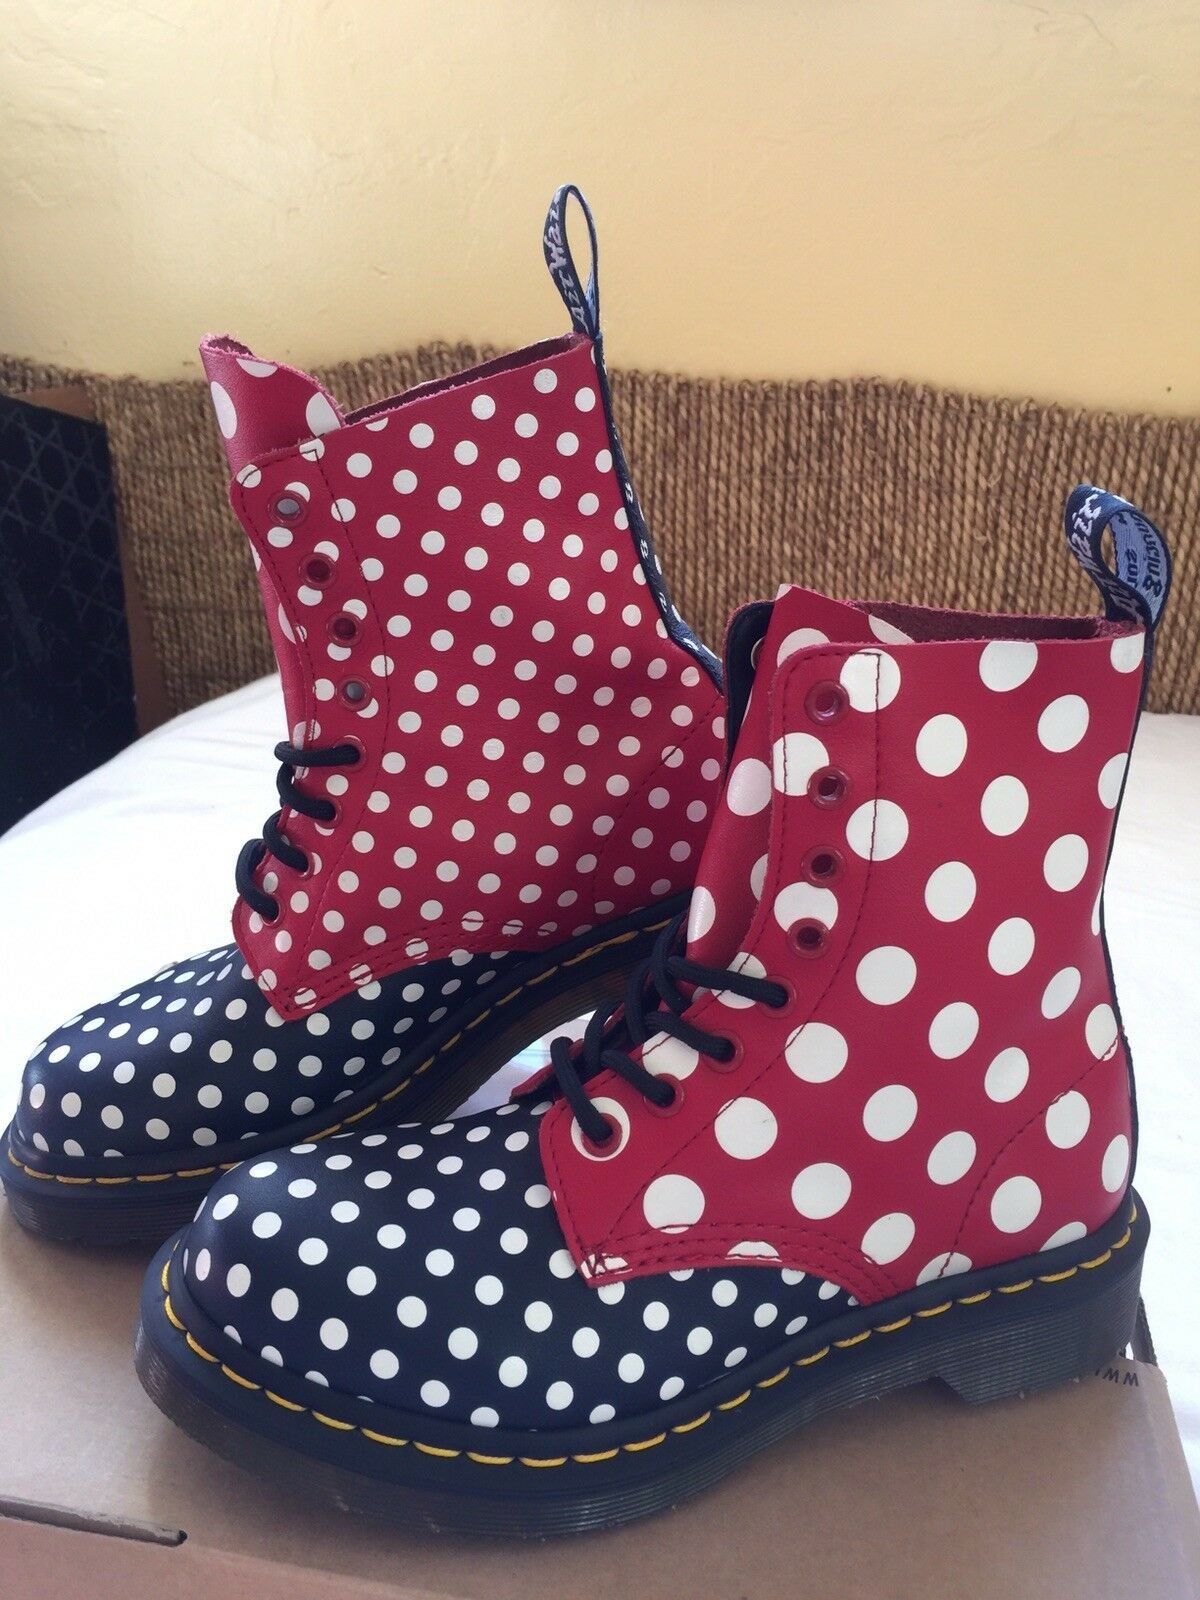 Dr. Martens CHAY 8 Eyelet  Leather Boots dots spots softly T shoes Size US 6